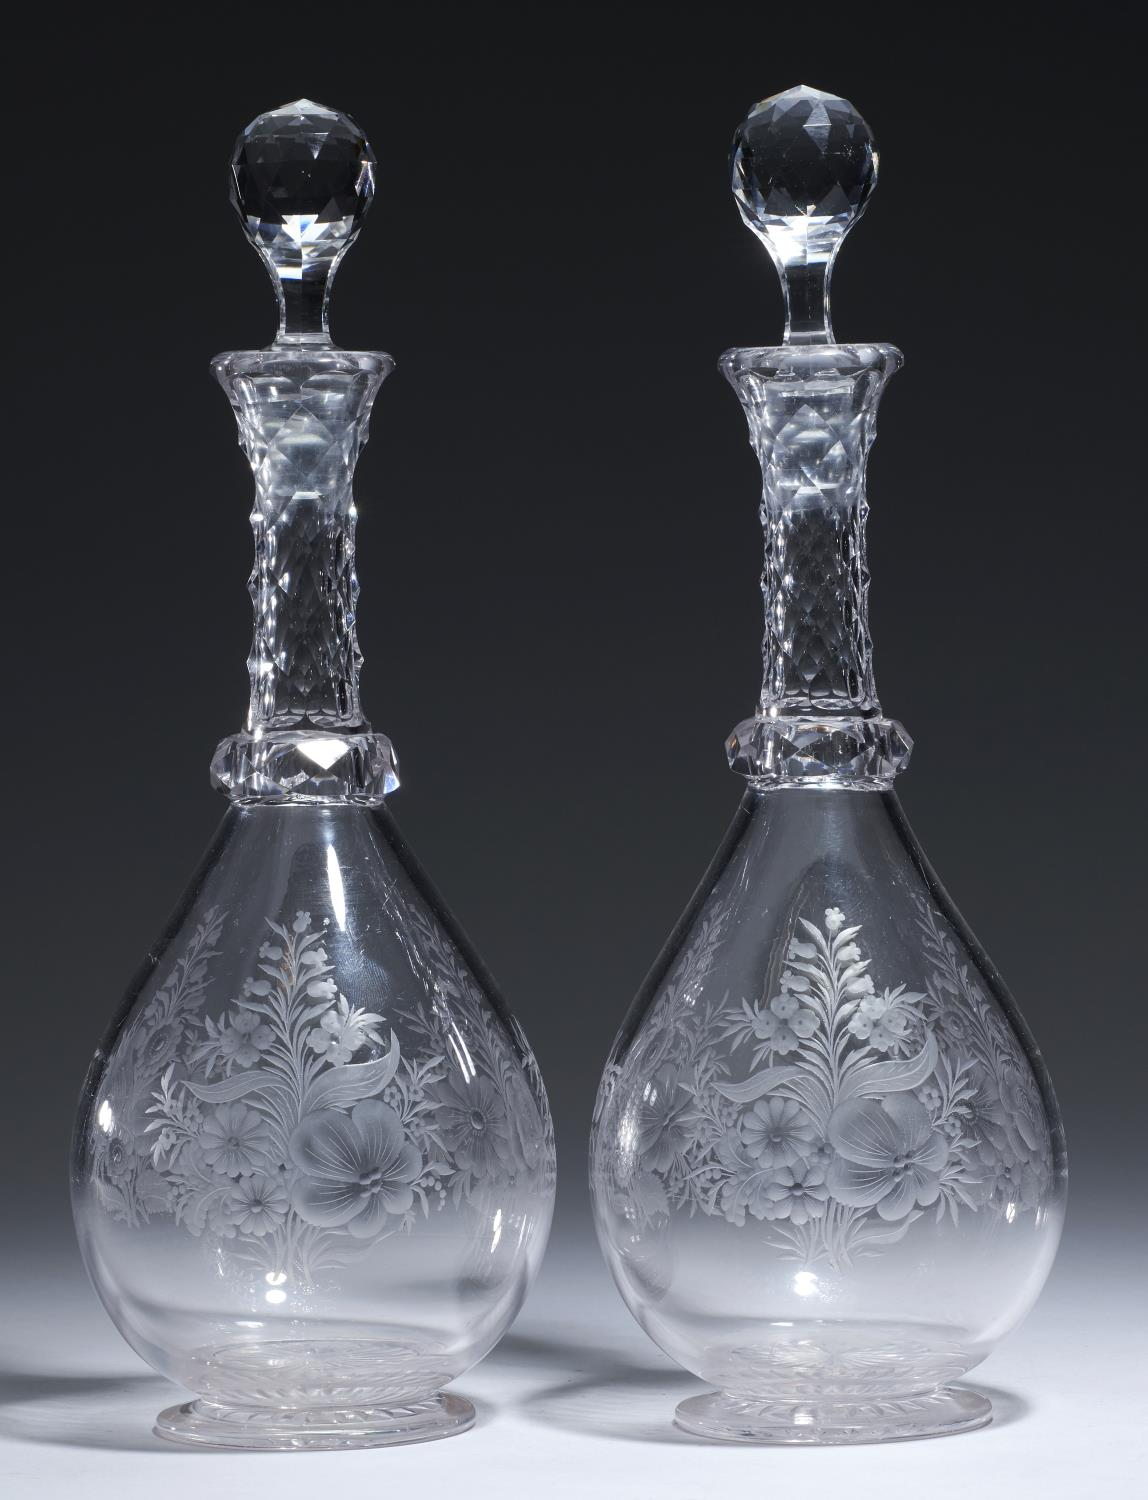 Lot 371 - A PAIR OF ENGRAVED AND CUT GLASS DECANTERS AND STOPPERS, EARLY 20TH C with faceted neck and